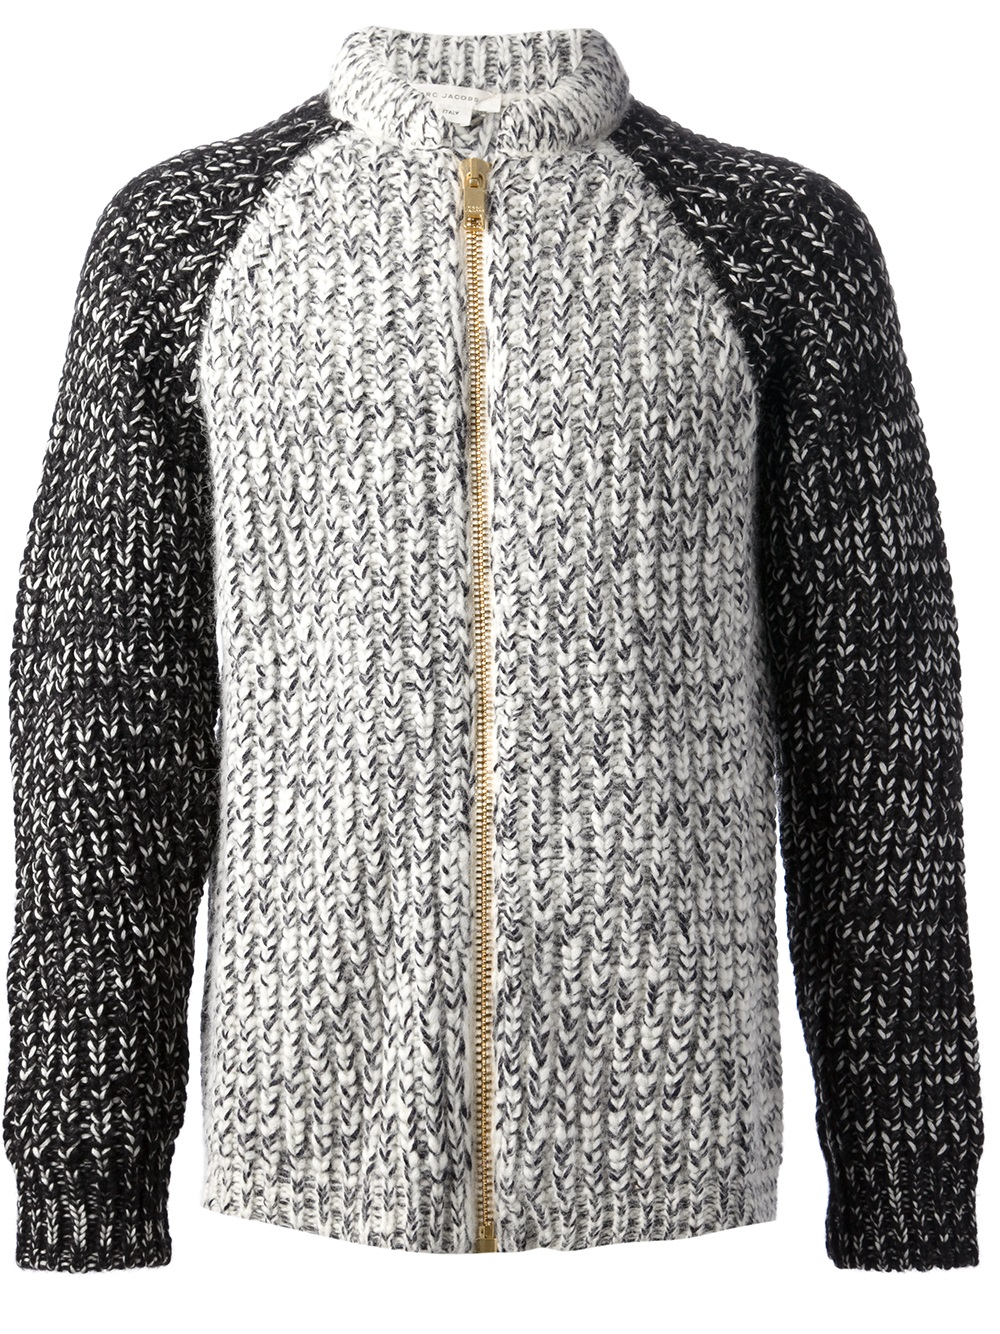 Lyst Marc Jacobs Chunky Knit Cardigan In Gray For Men